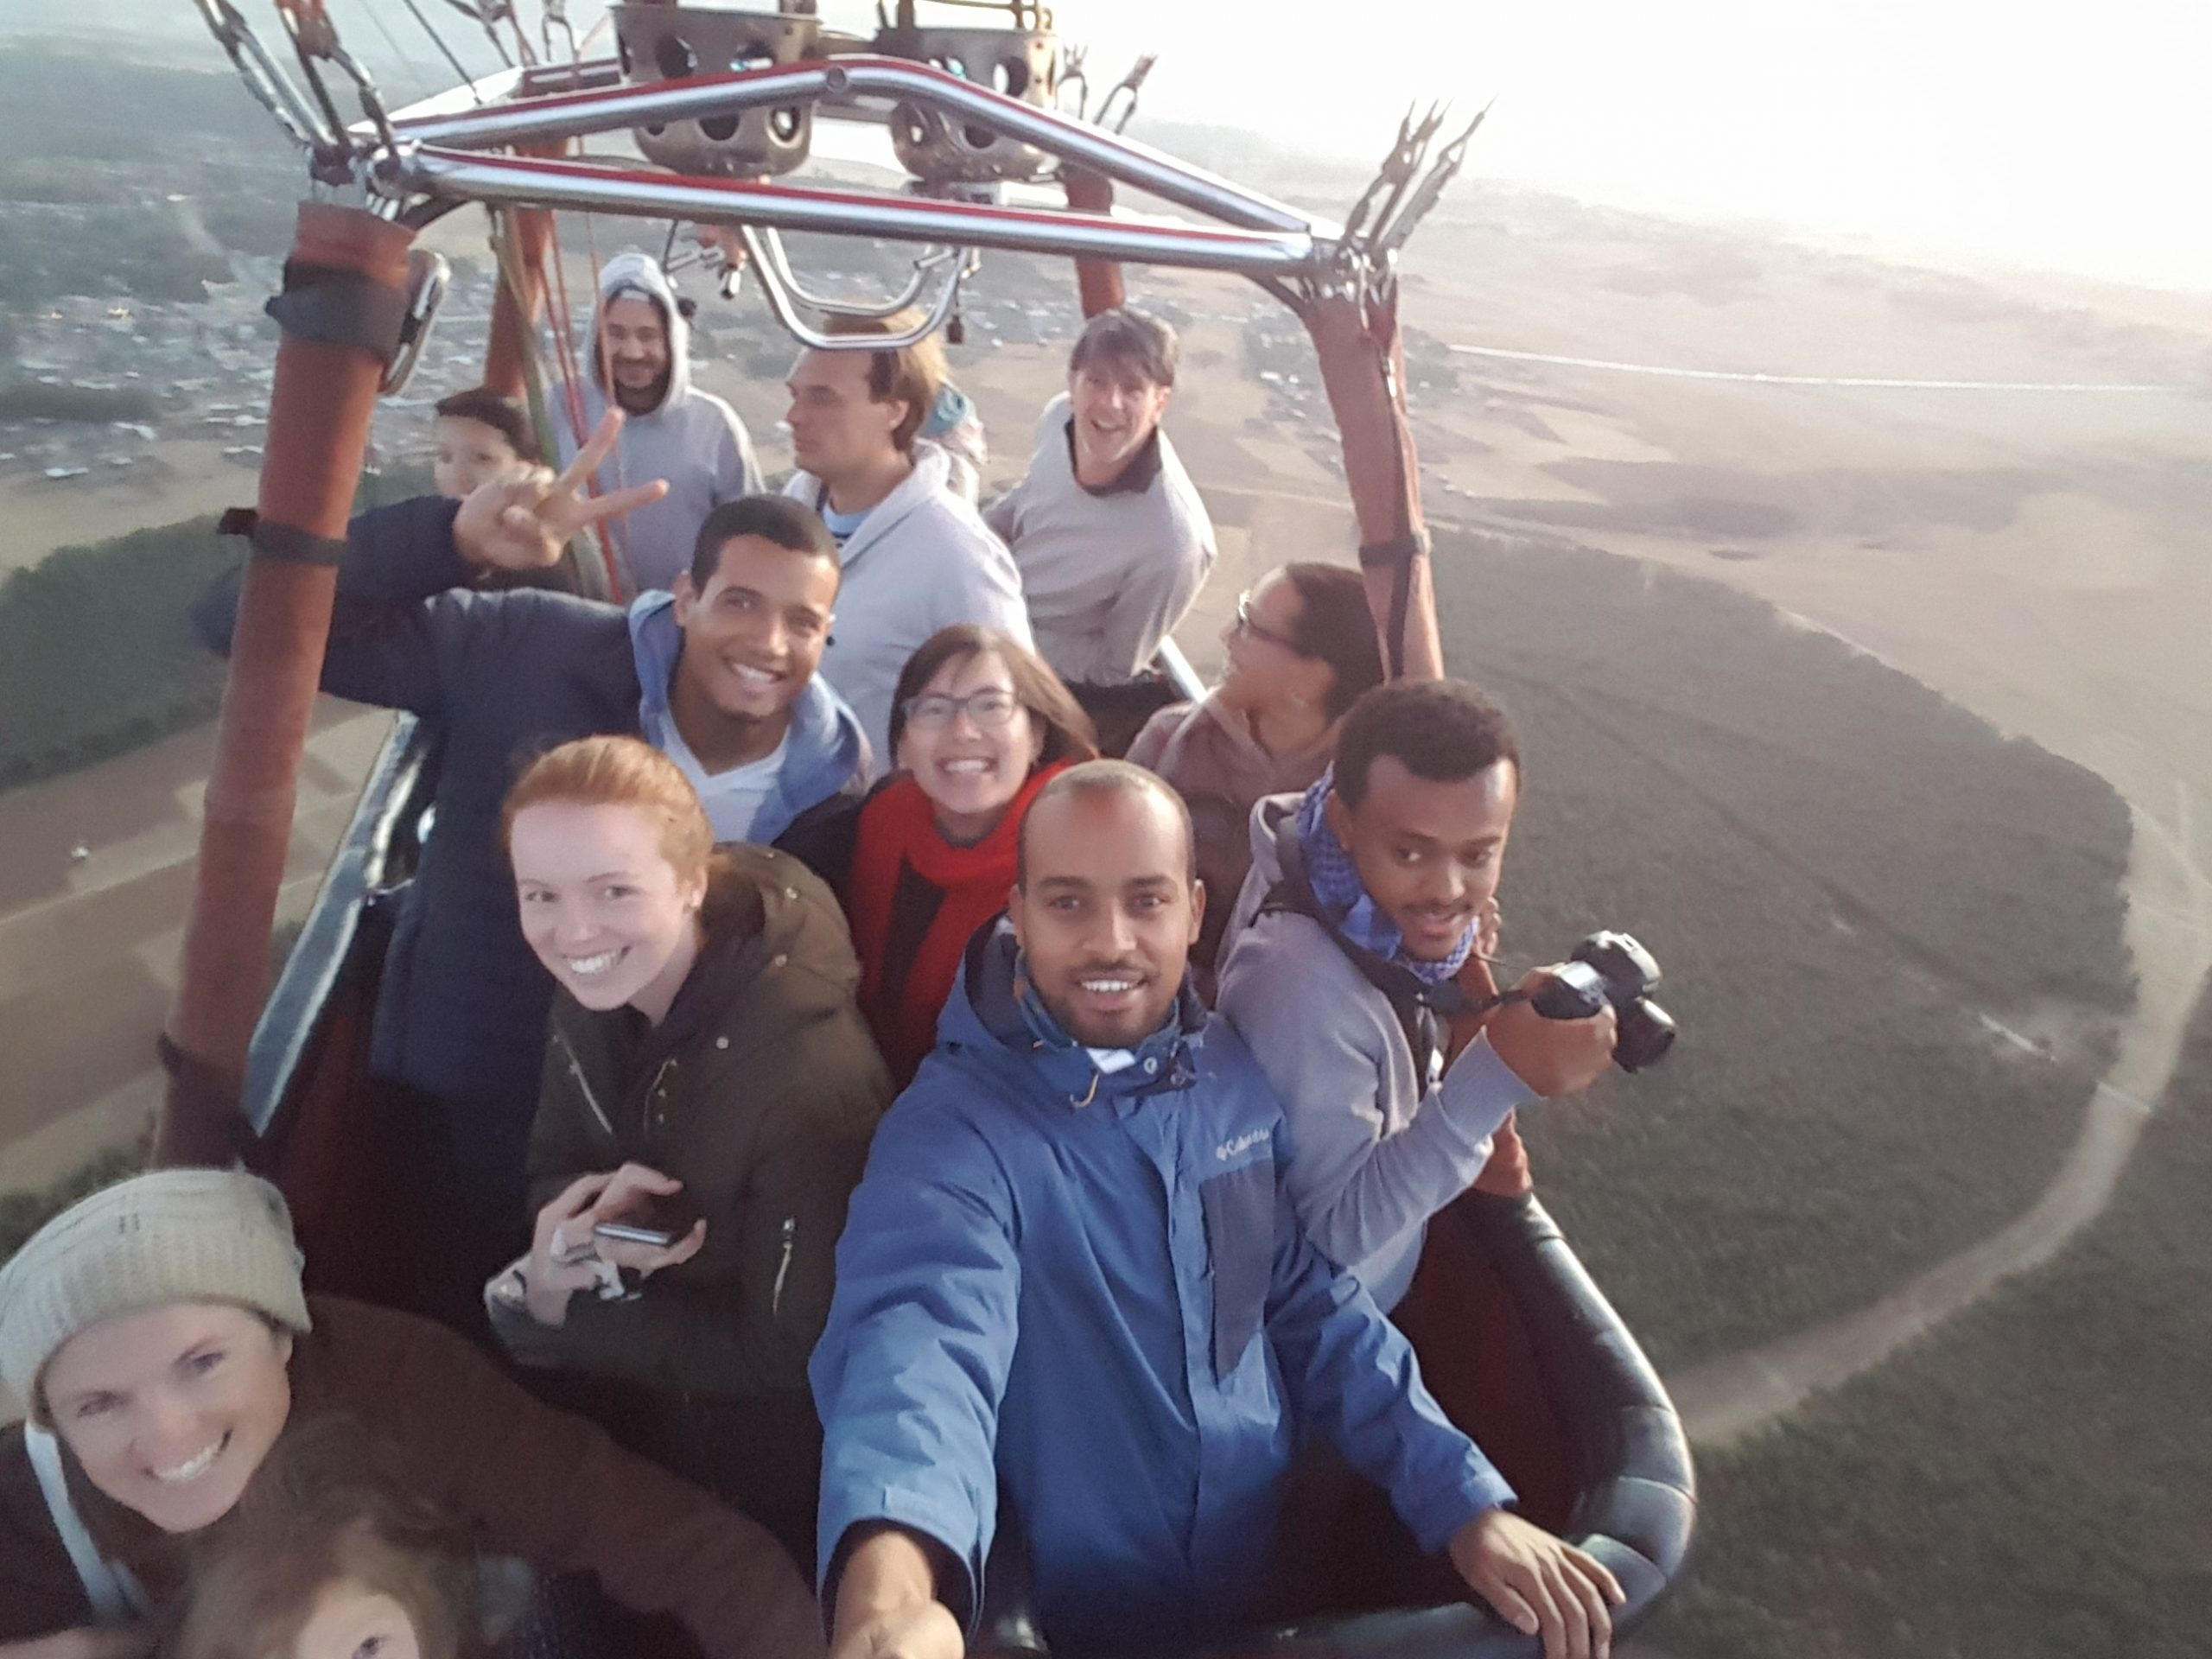 Sunrise balloon flight Addis Ababa Saturday 17 April 2021